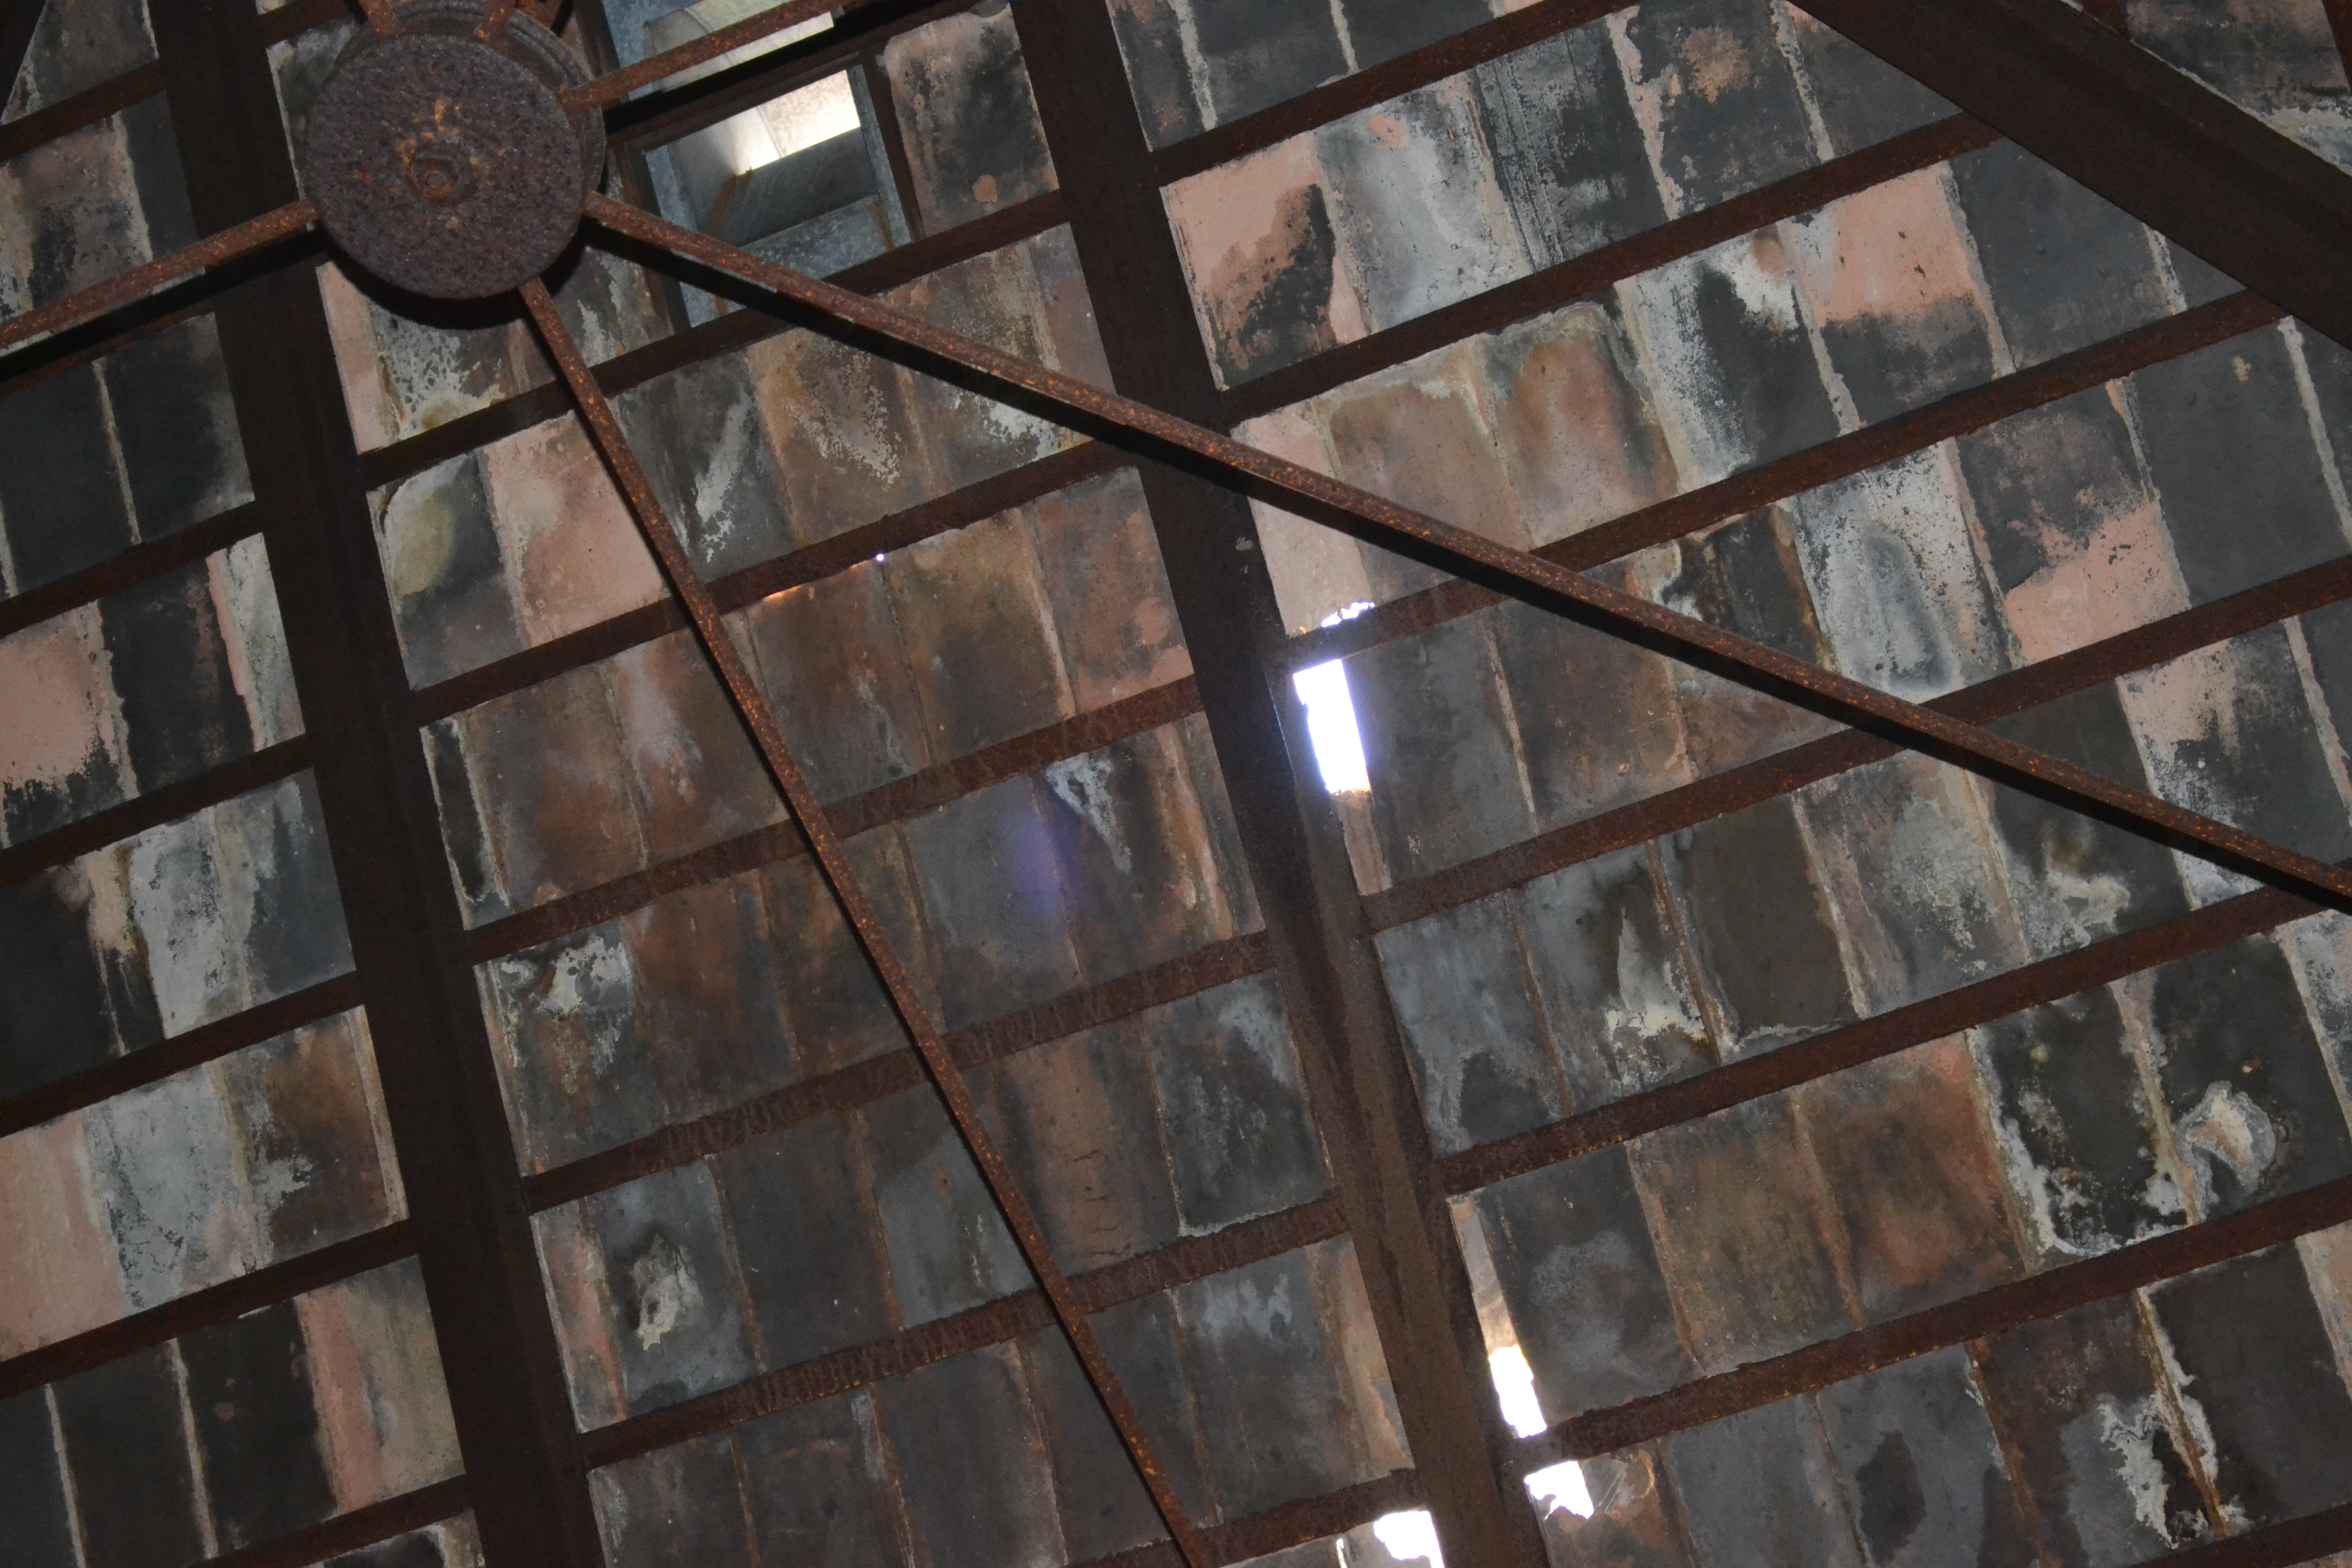 Metal Ceiling Tile Market 2018 Overview Along With Competitive